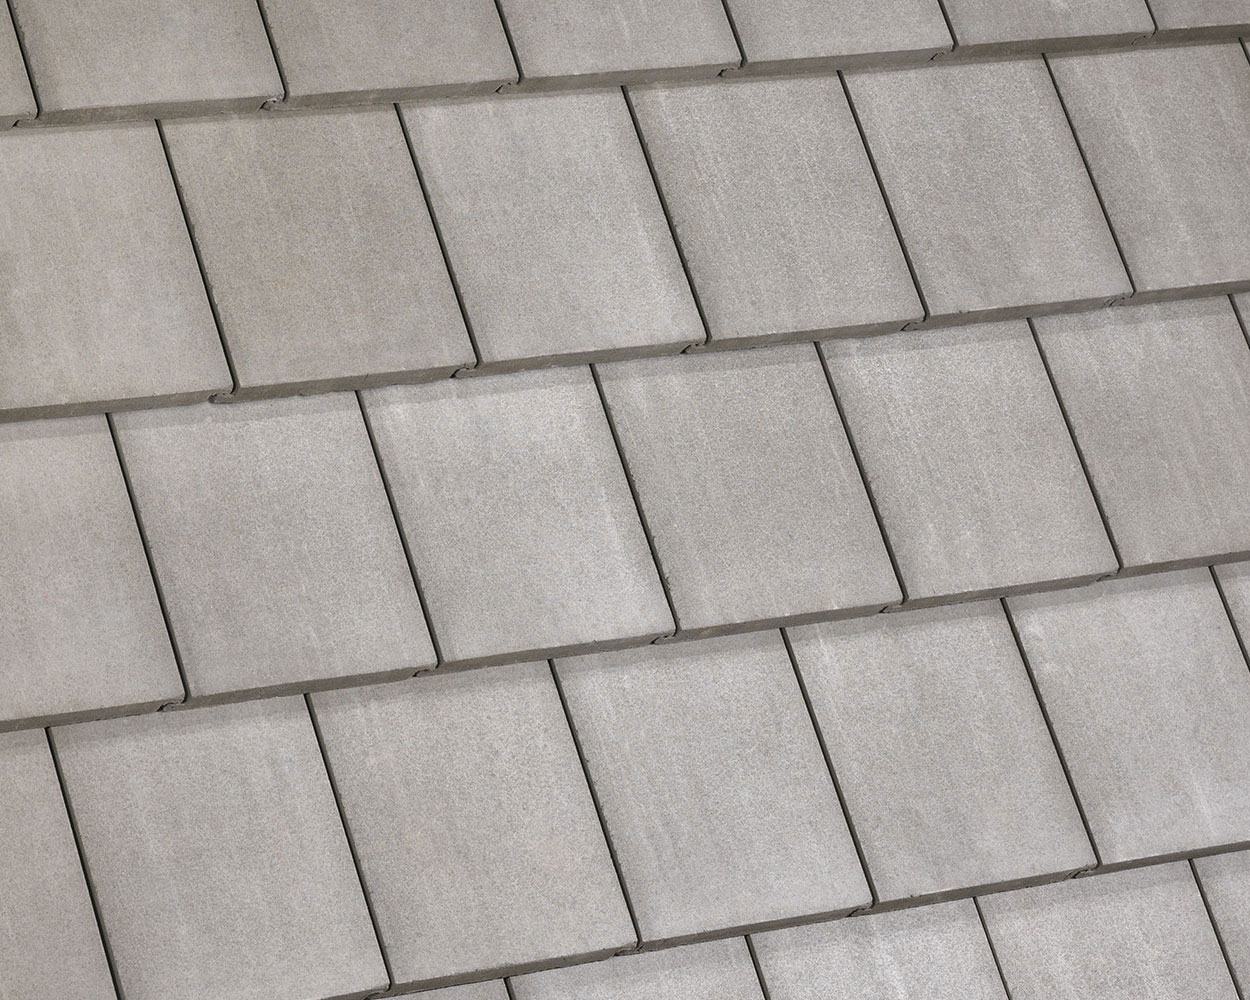 Royal palm tile roof color swatch